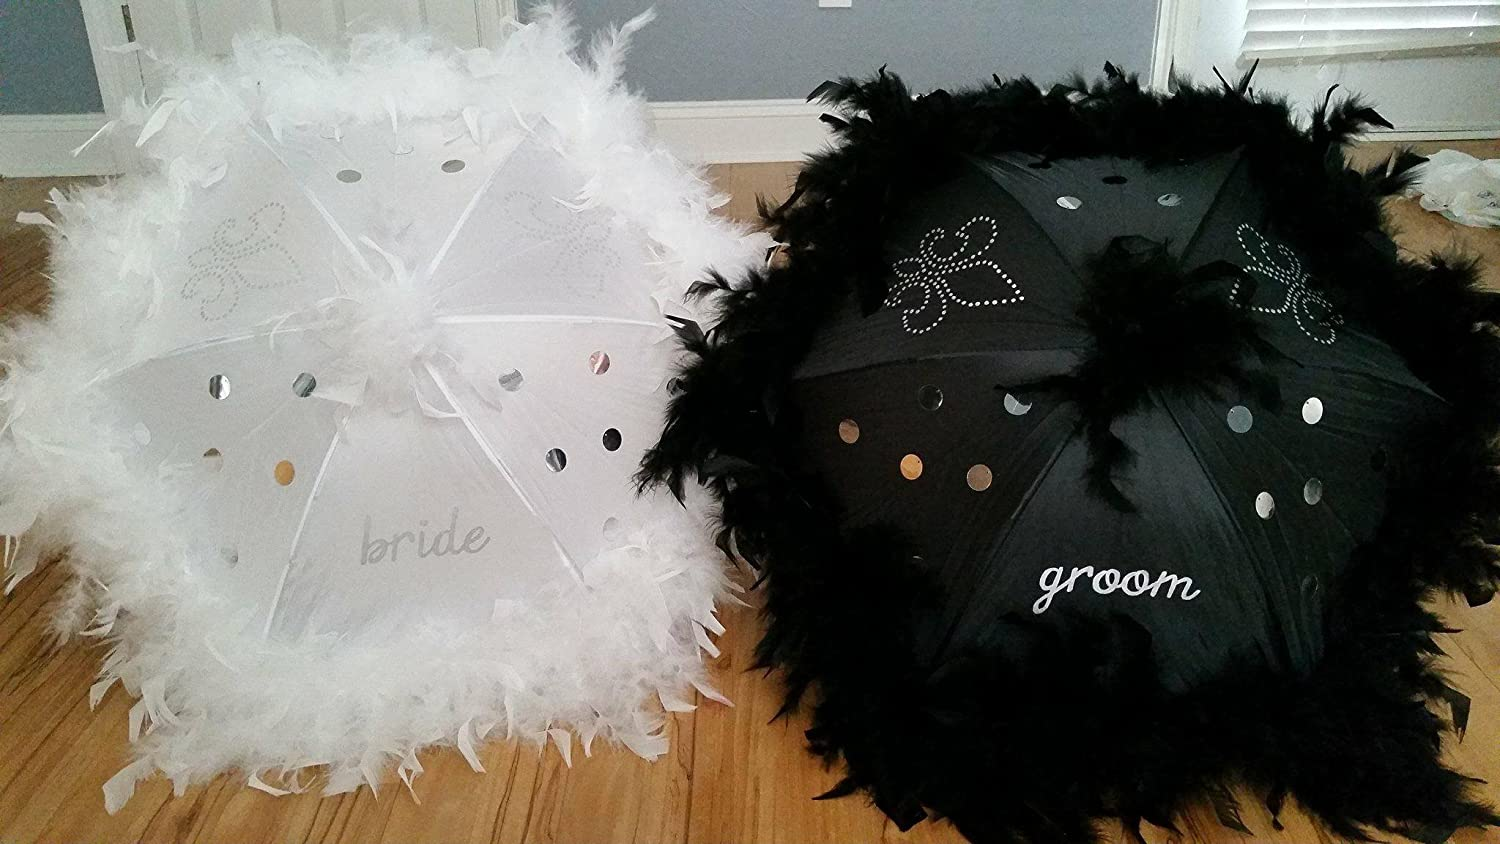 Wedding Second Line Umbrellas Handmade In New Orleans, Black and White or Cream, Medium or Large, Feather and Fringe Option